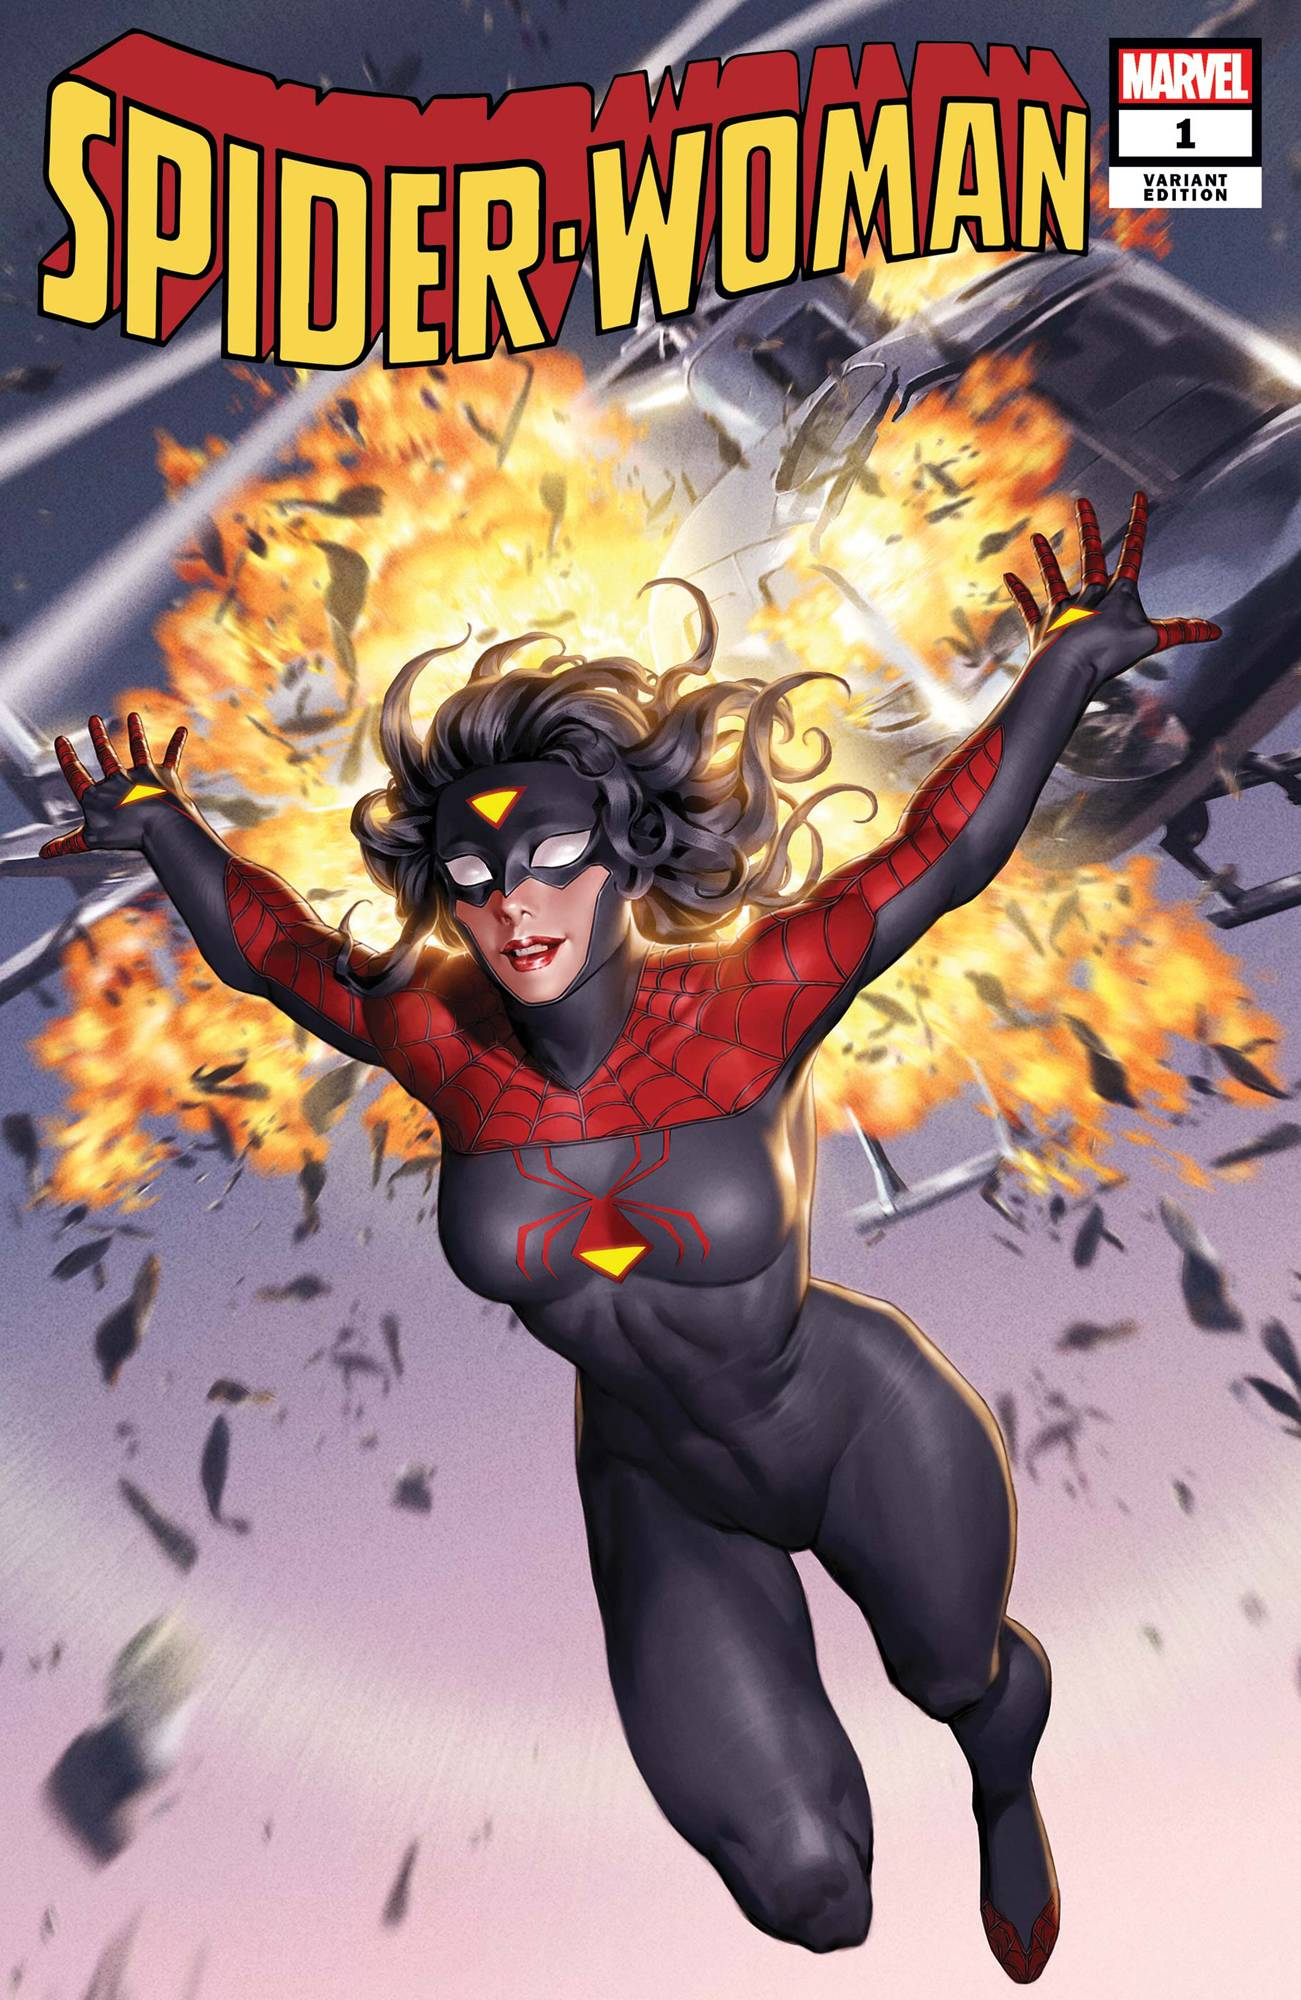 SPIDER-WOMAN #1 YOON NEW COSTUME CVR